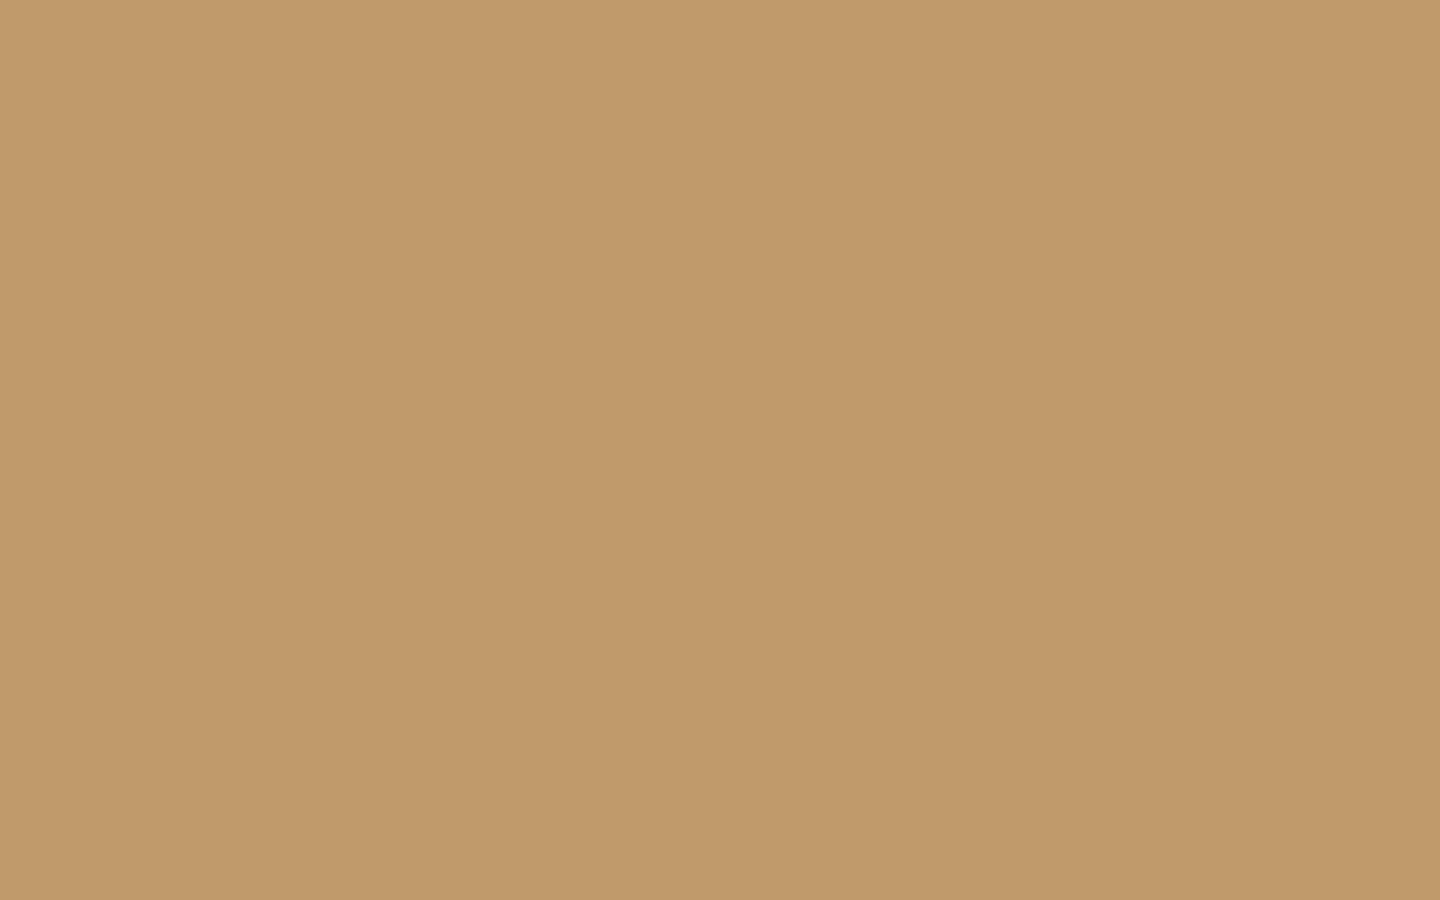 1440x900 Wood Brown Solid Color Background